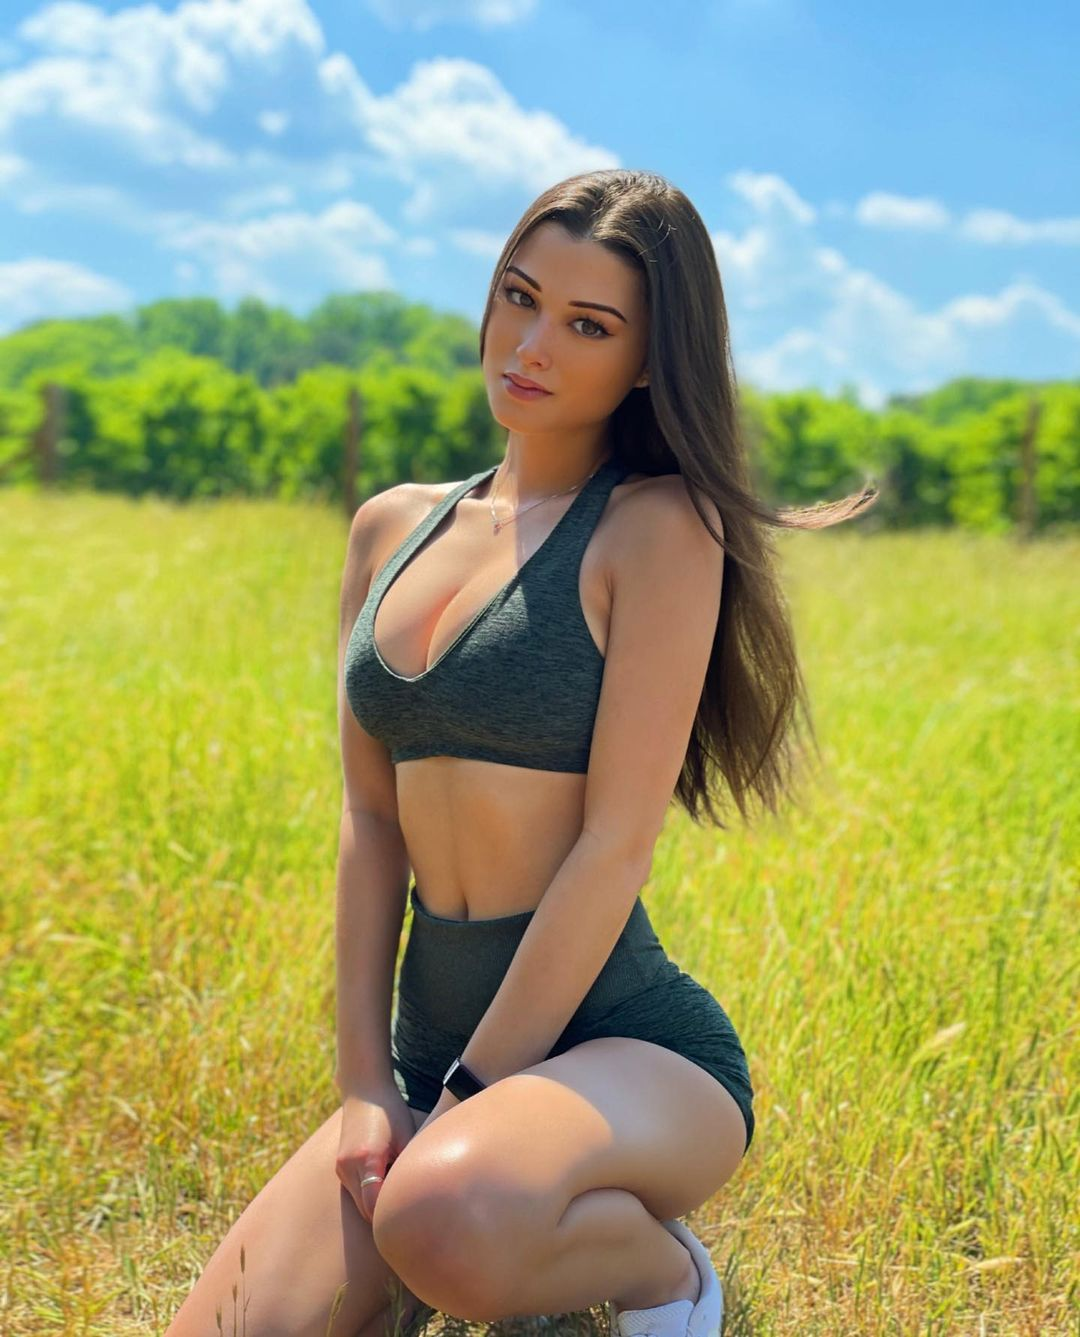 Who is Keilah Kang The Impressive Beauty of Modeling 6